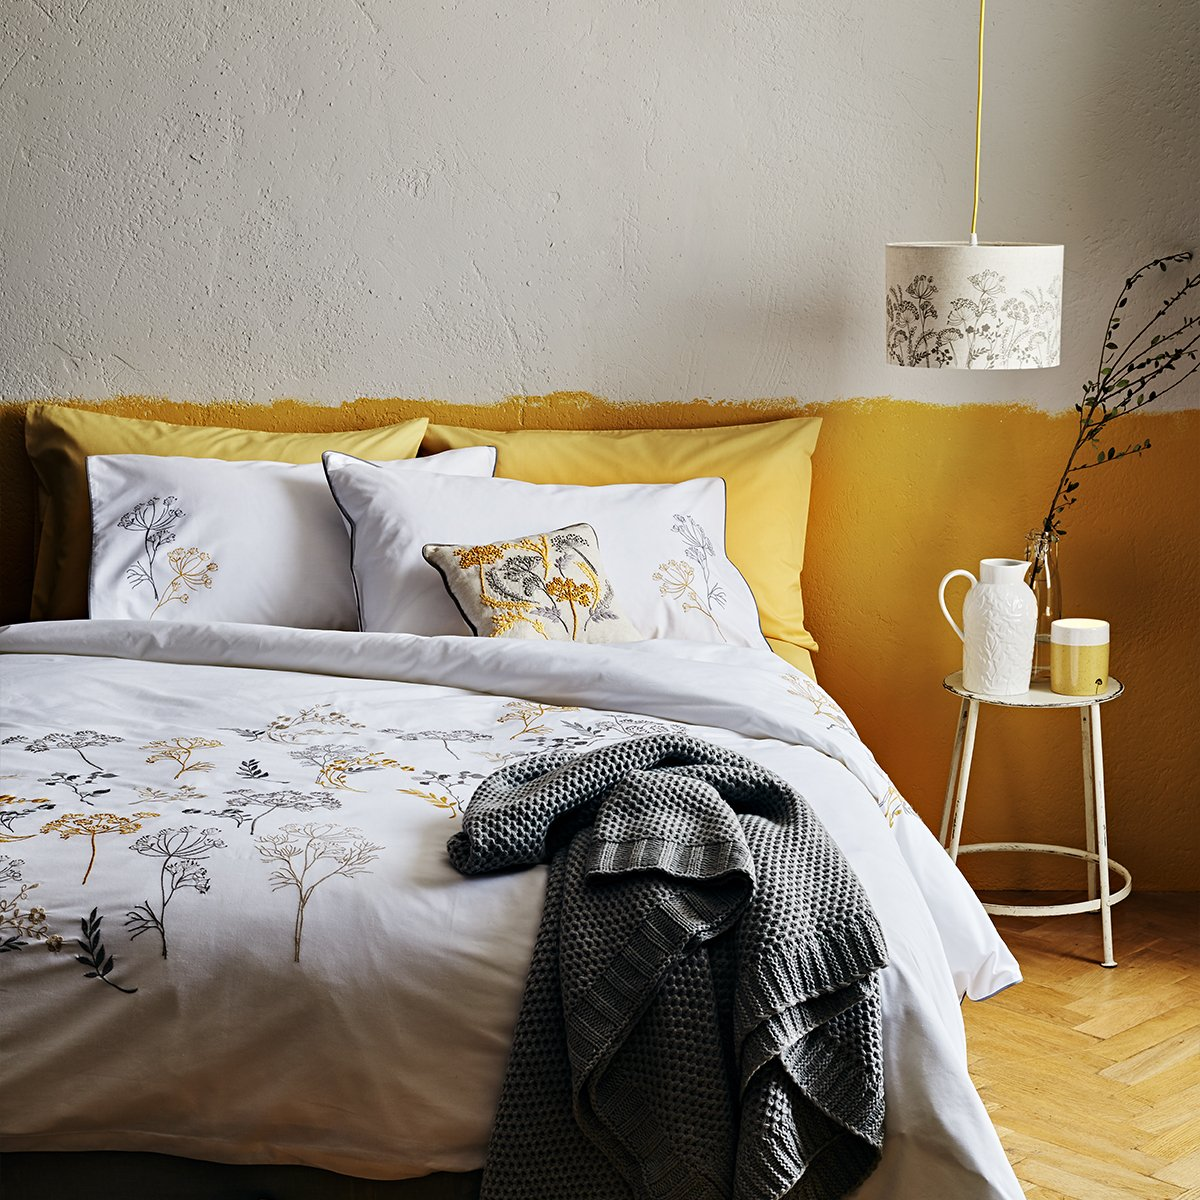 Sainsburys Bedroom Furniture Andrew Tanner On Twitter The New Harvest Collection Designed